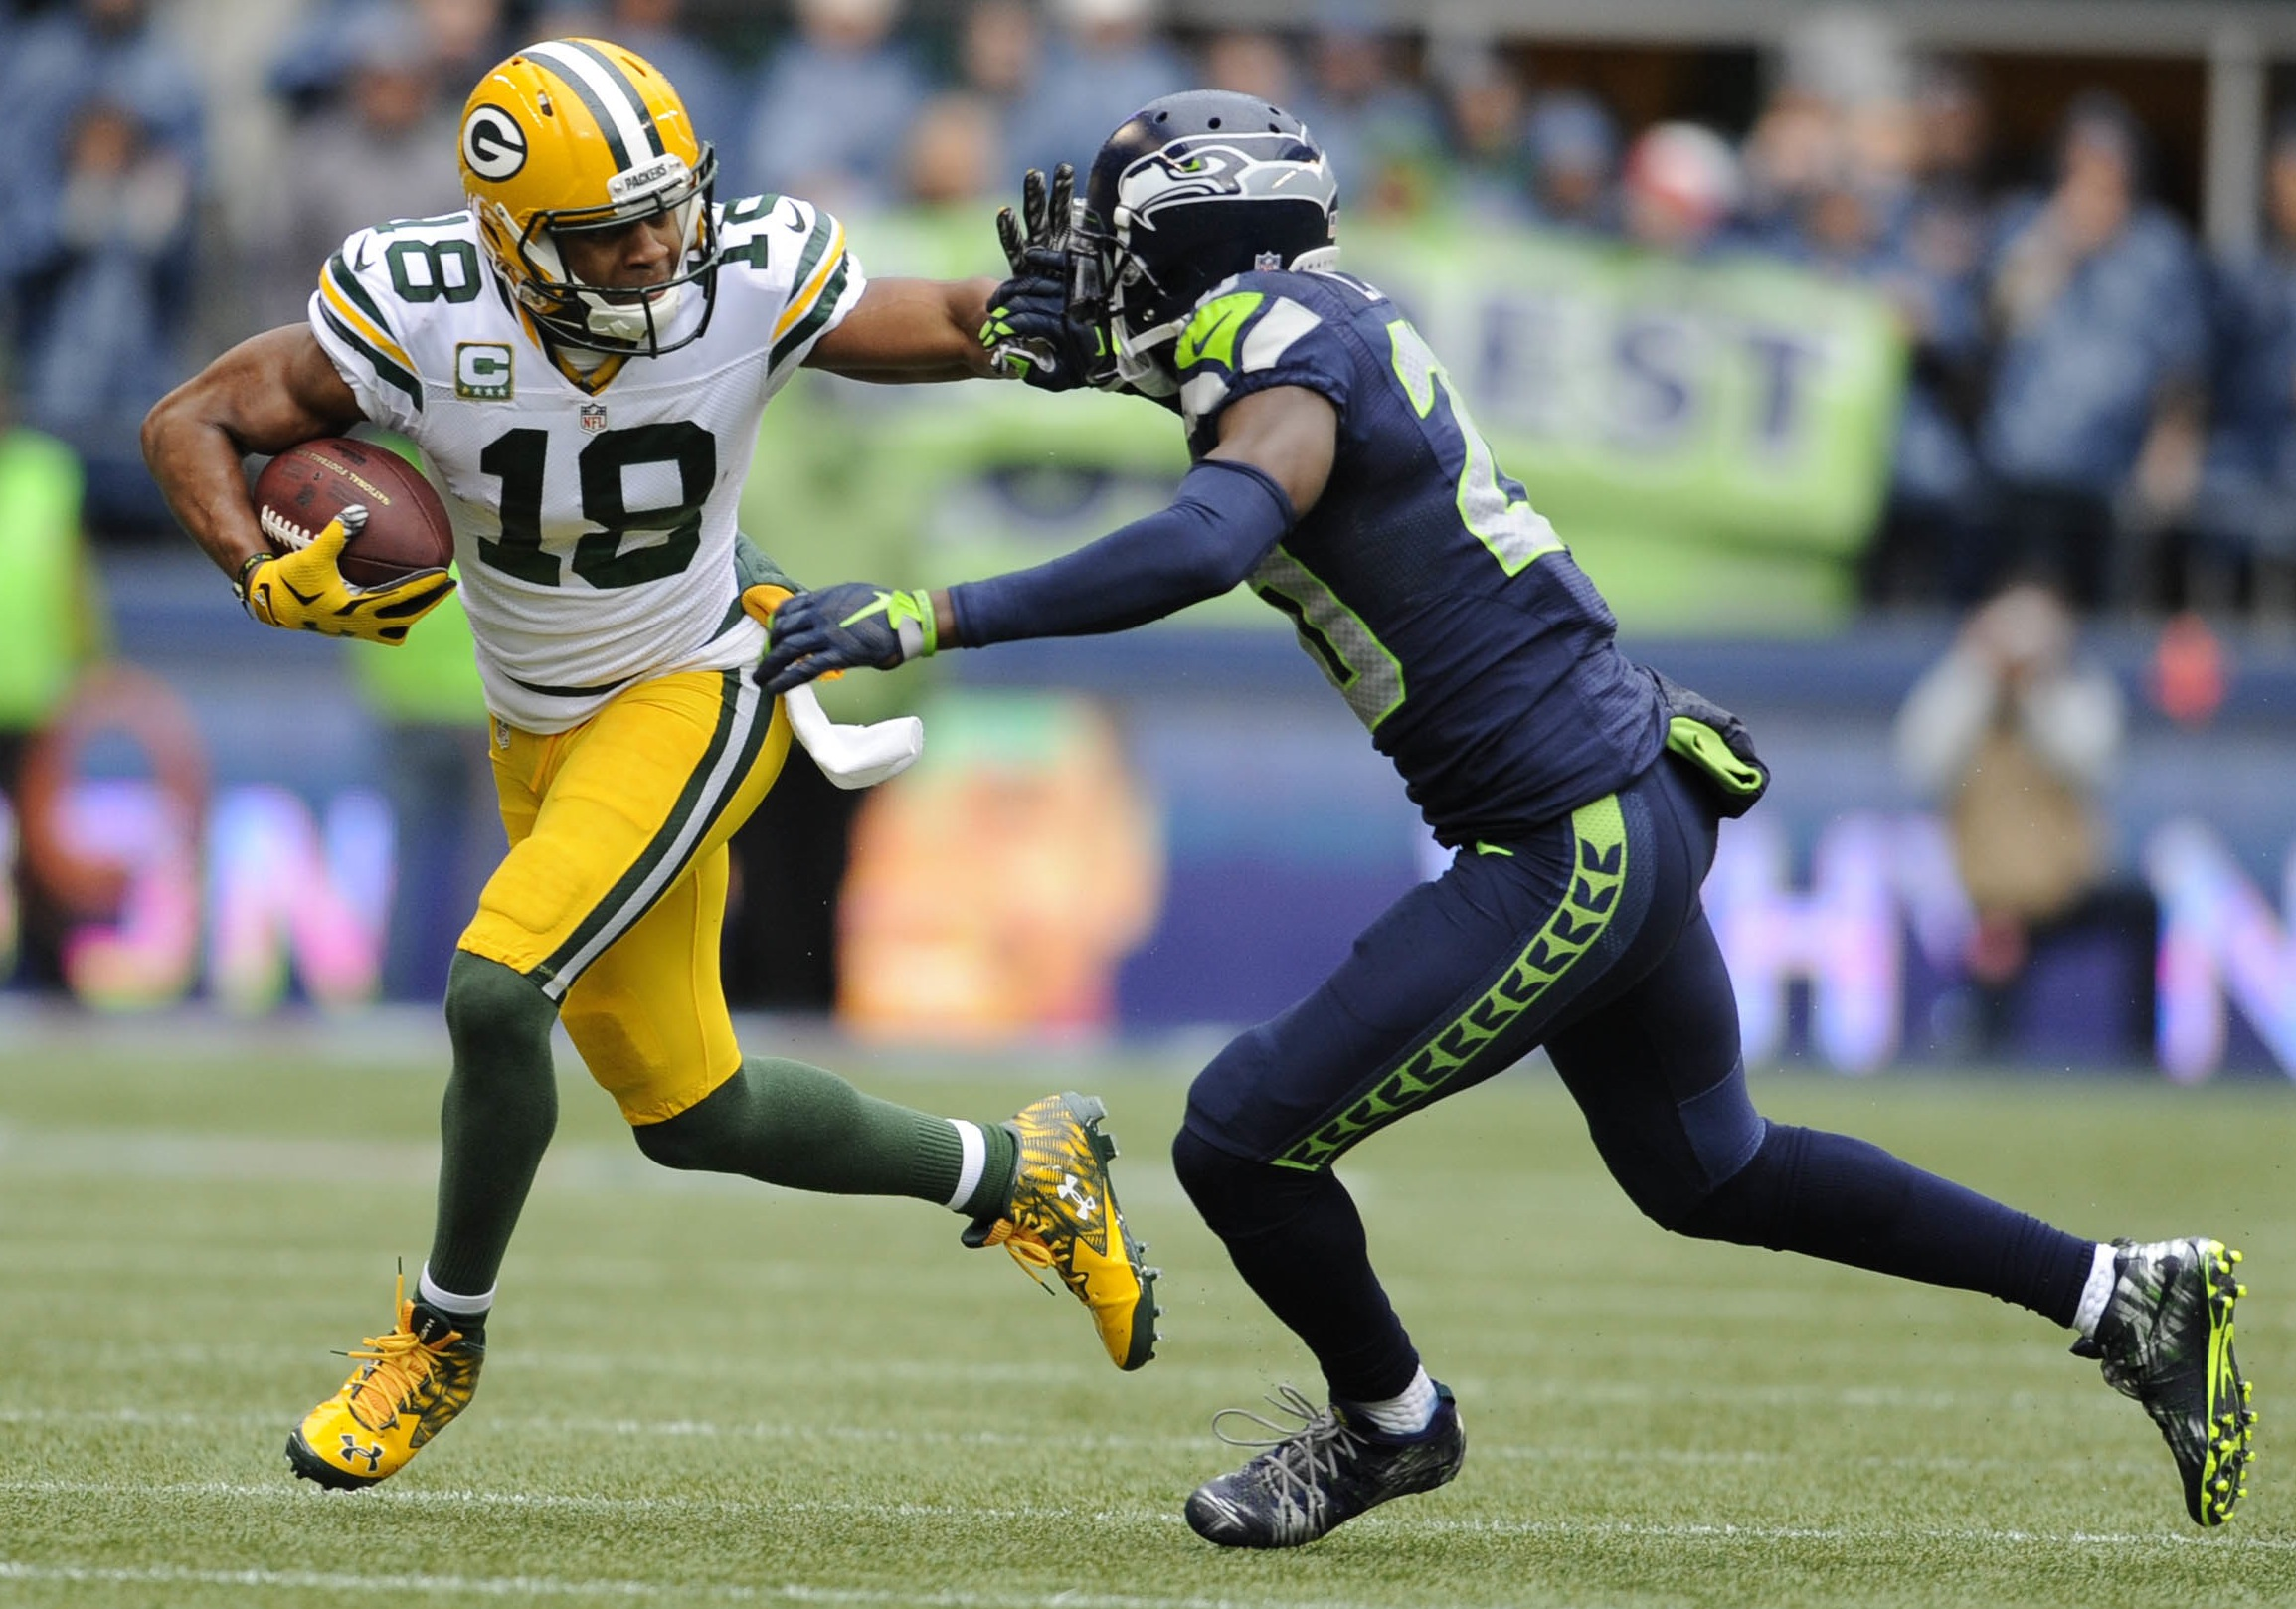 Green Bay Packers wide receiver Randall Cobb and Seattle Seahawks cornerback Jeremy Lane—Steven Bisig, USA TODAY Sports.